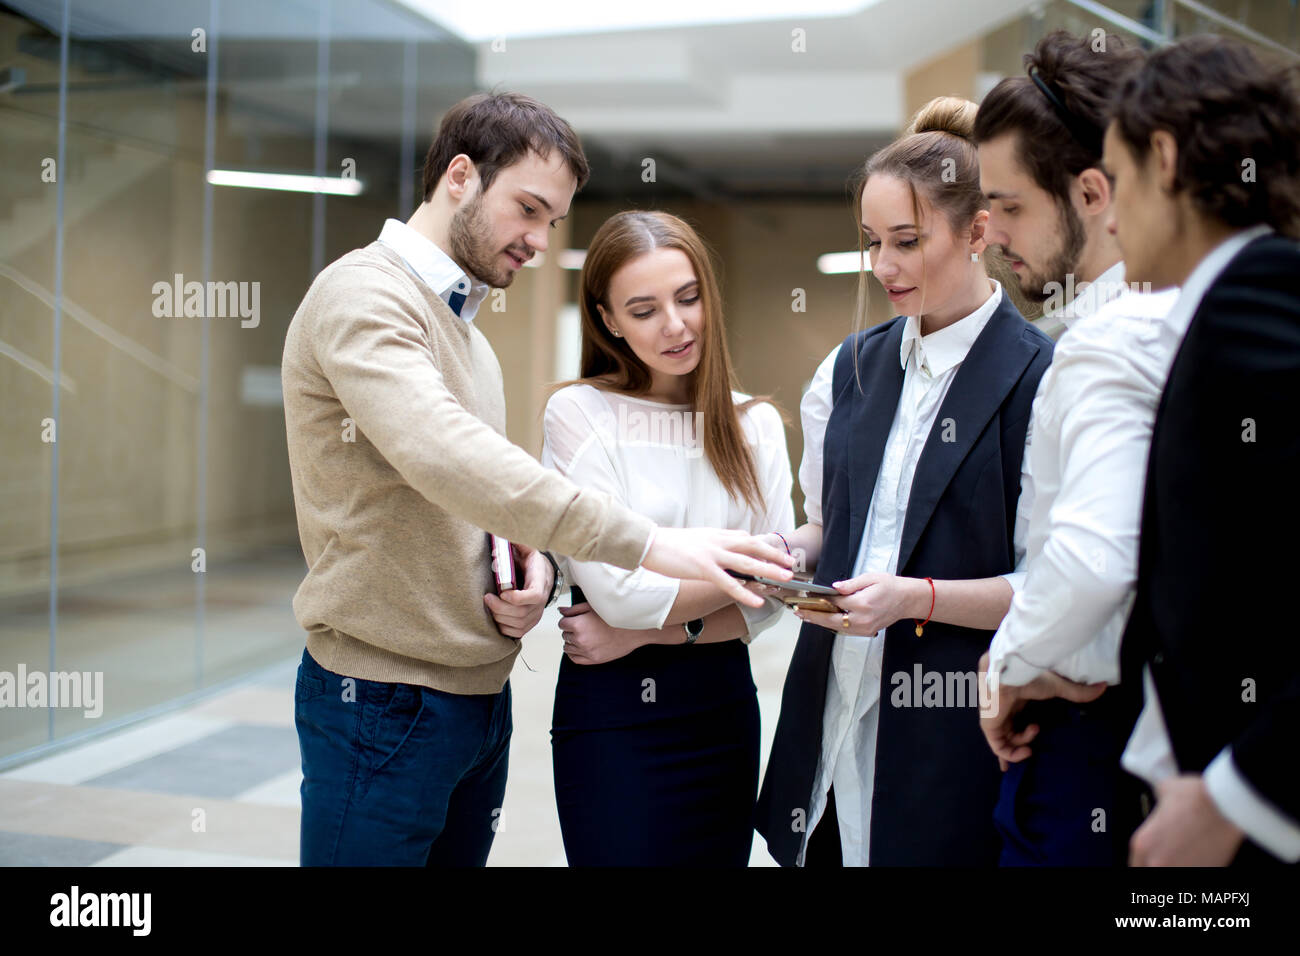 businesspeople using digital tablet together in office - Stock Image